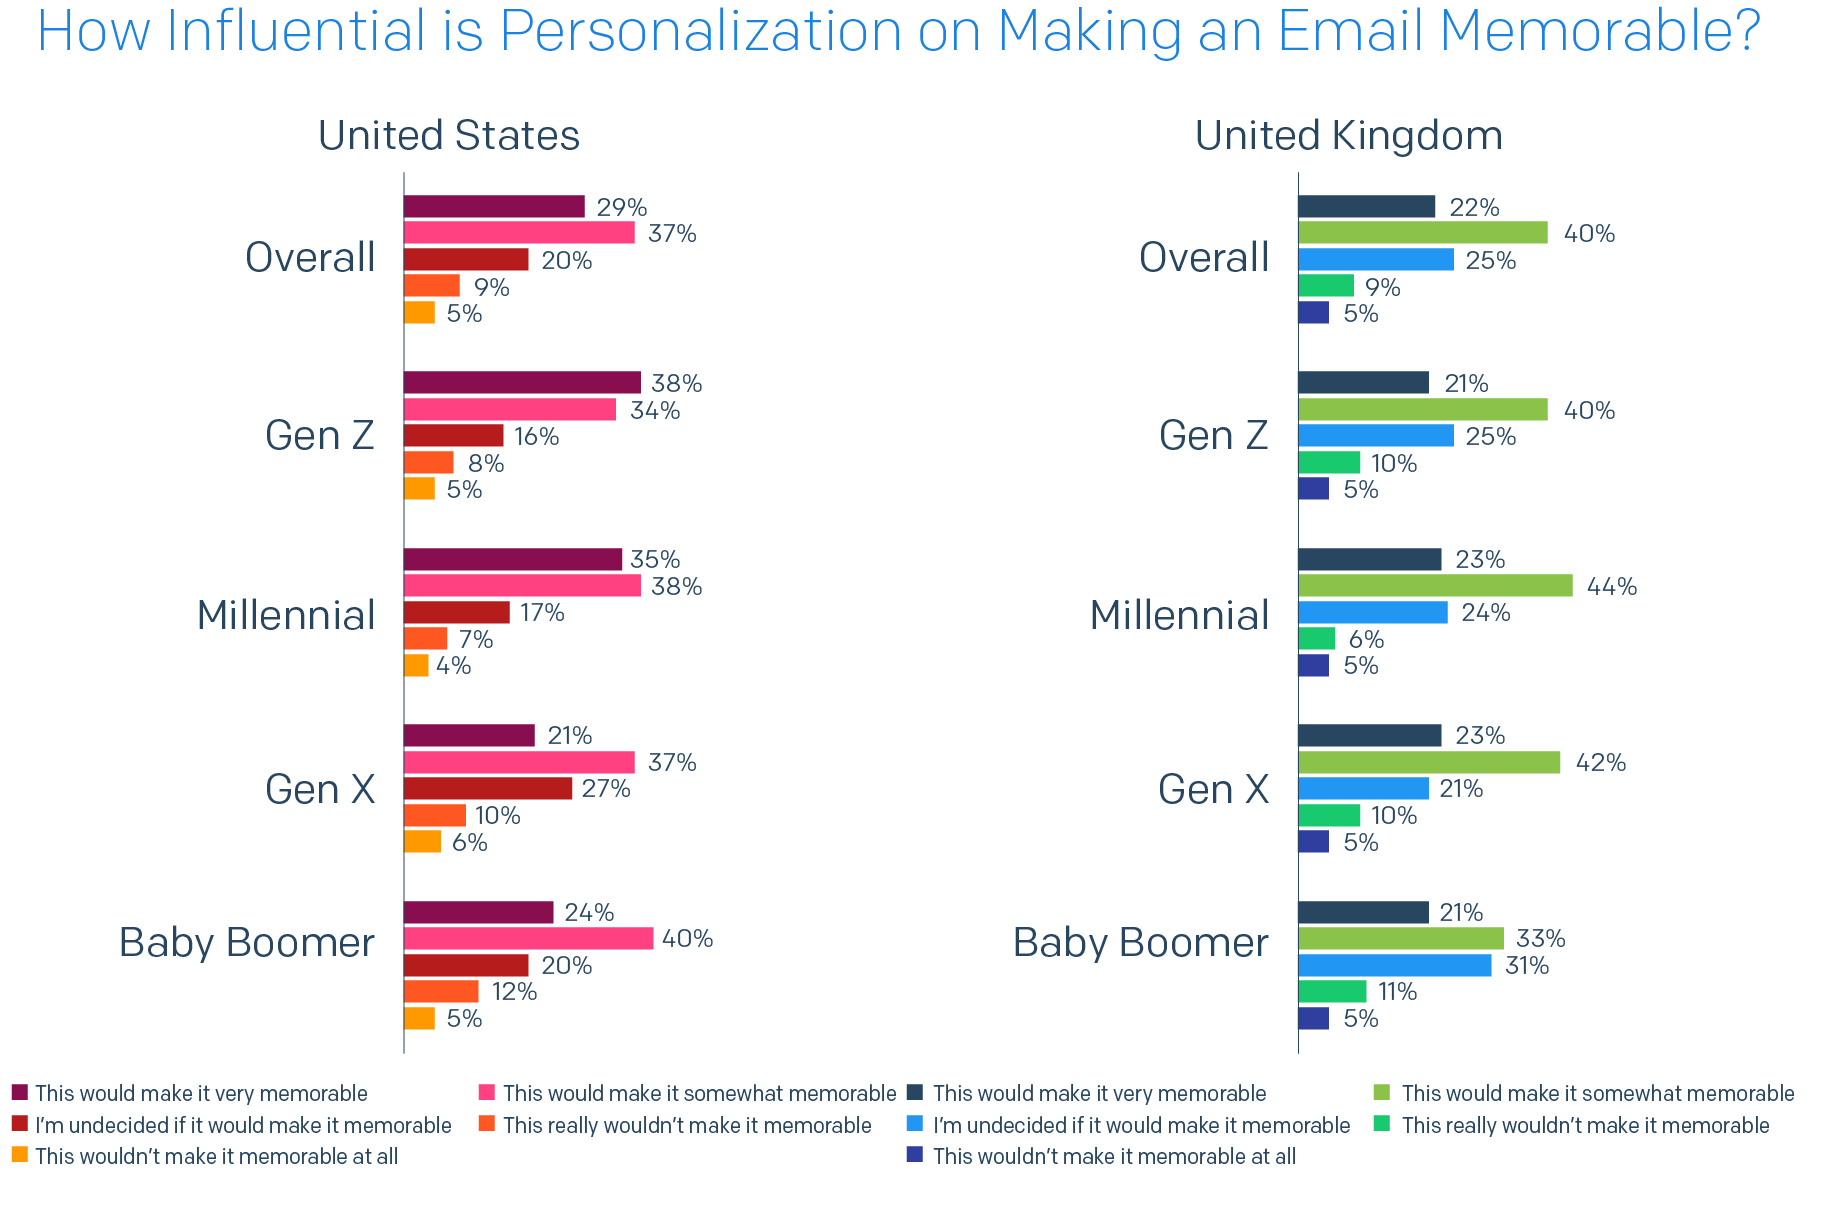 bar chart of U.S./U.K. split of How Influential is Personalization on Making an Email Memorable?